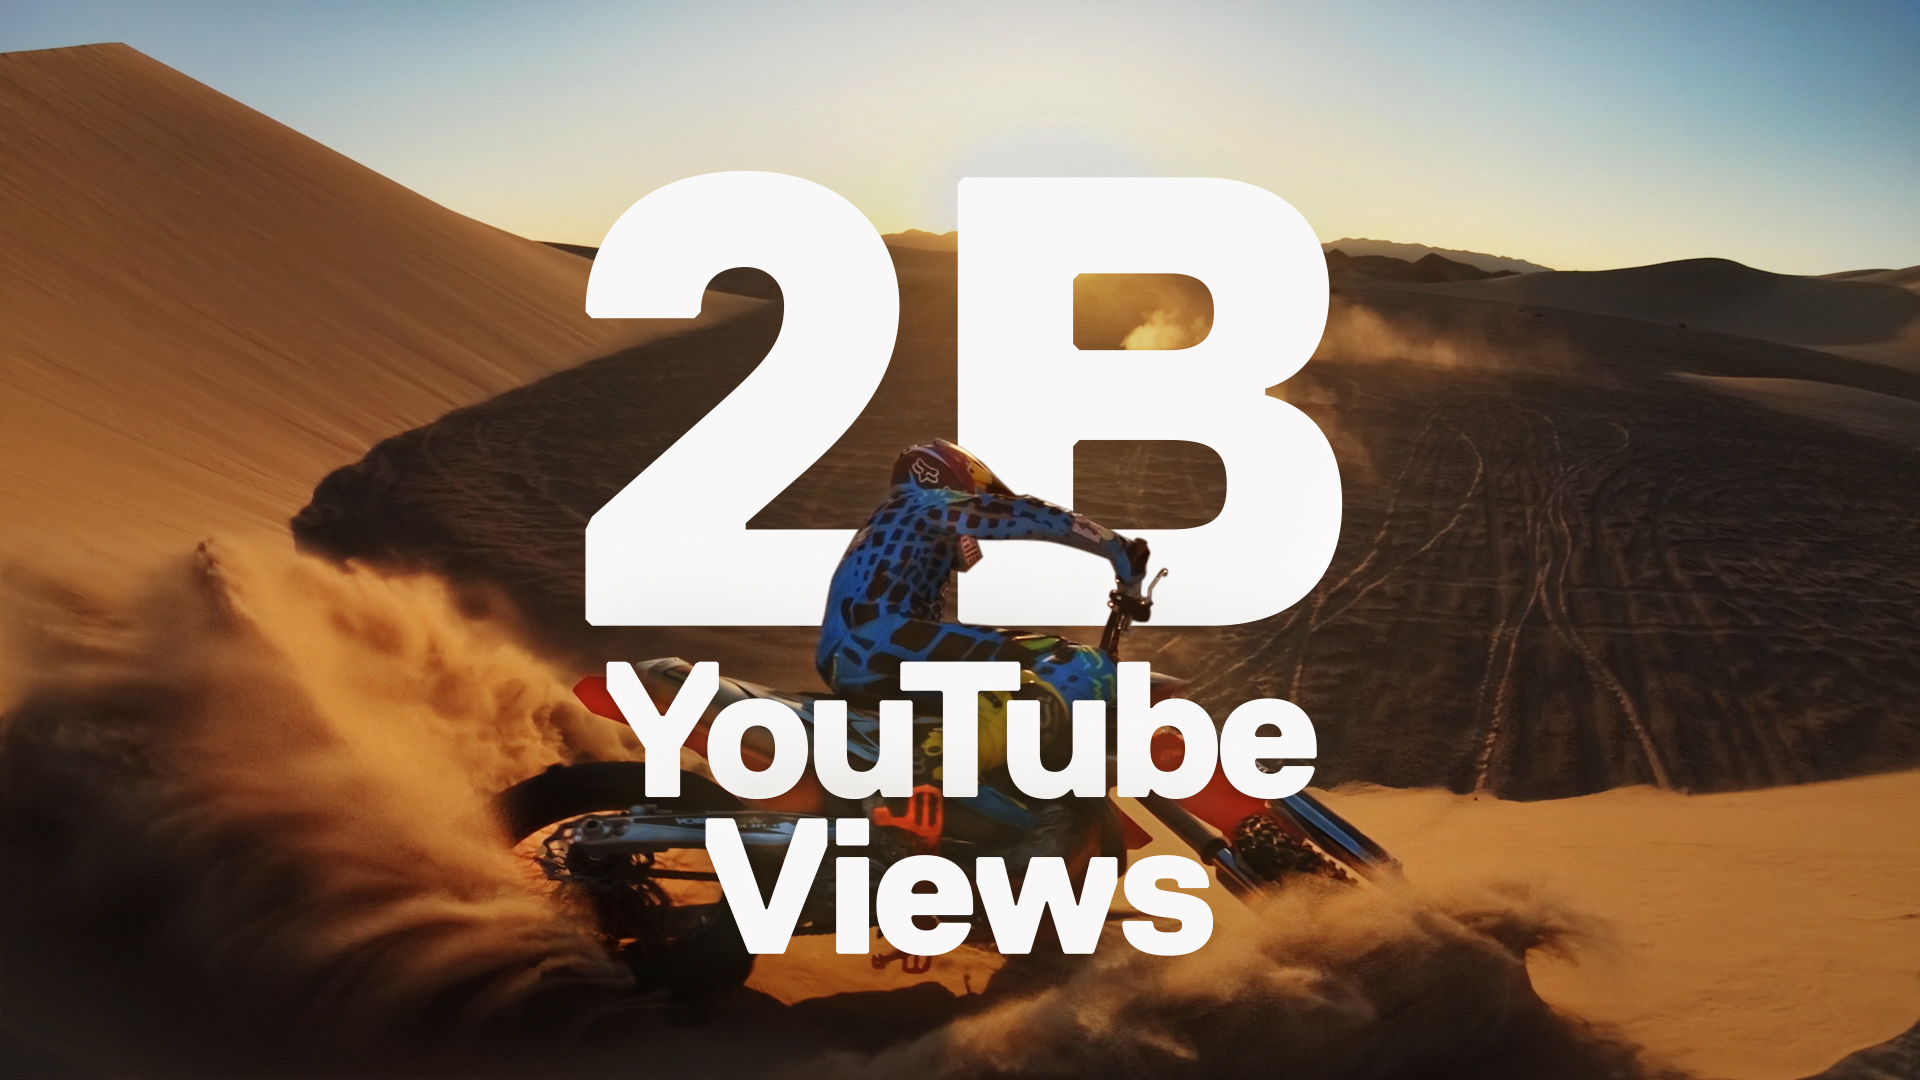 2 Billion Views Graphic with Motorcycle